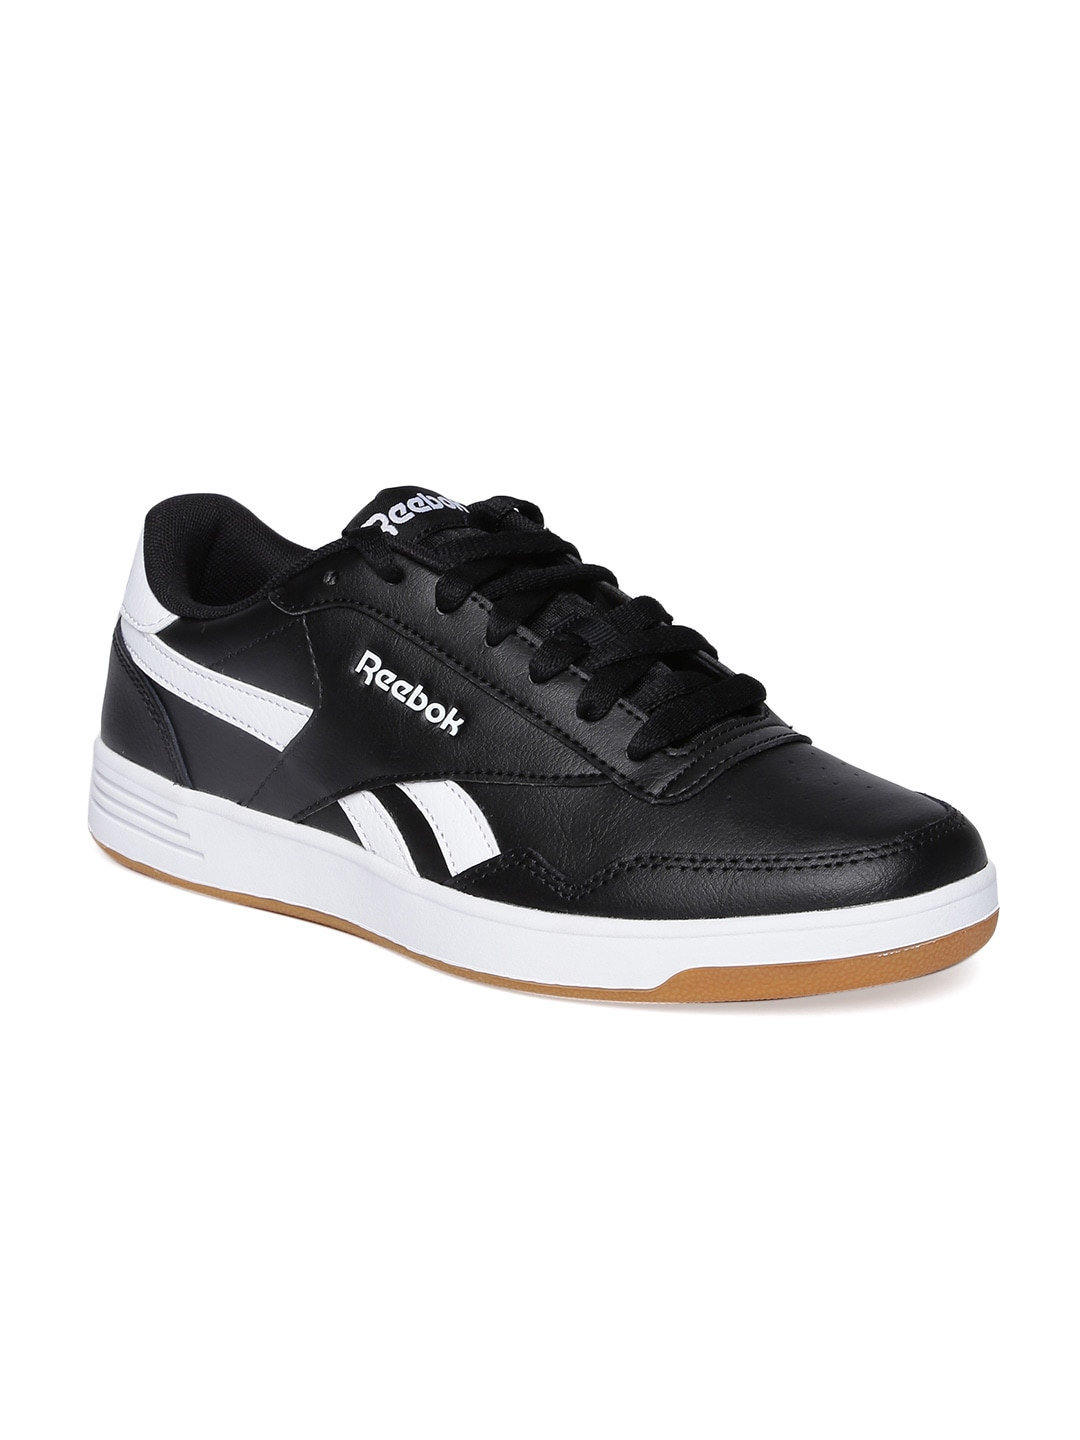 160c5f8a2d33 Reebok Classic Protonium Black Sneakers for Men online in India at ...